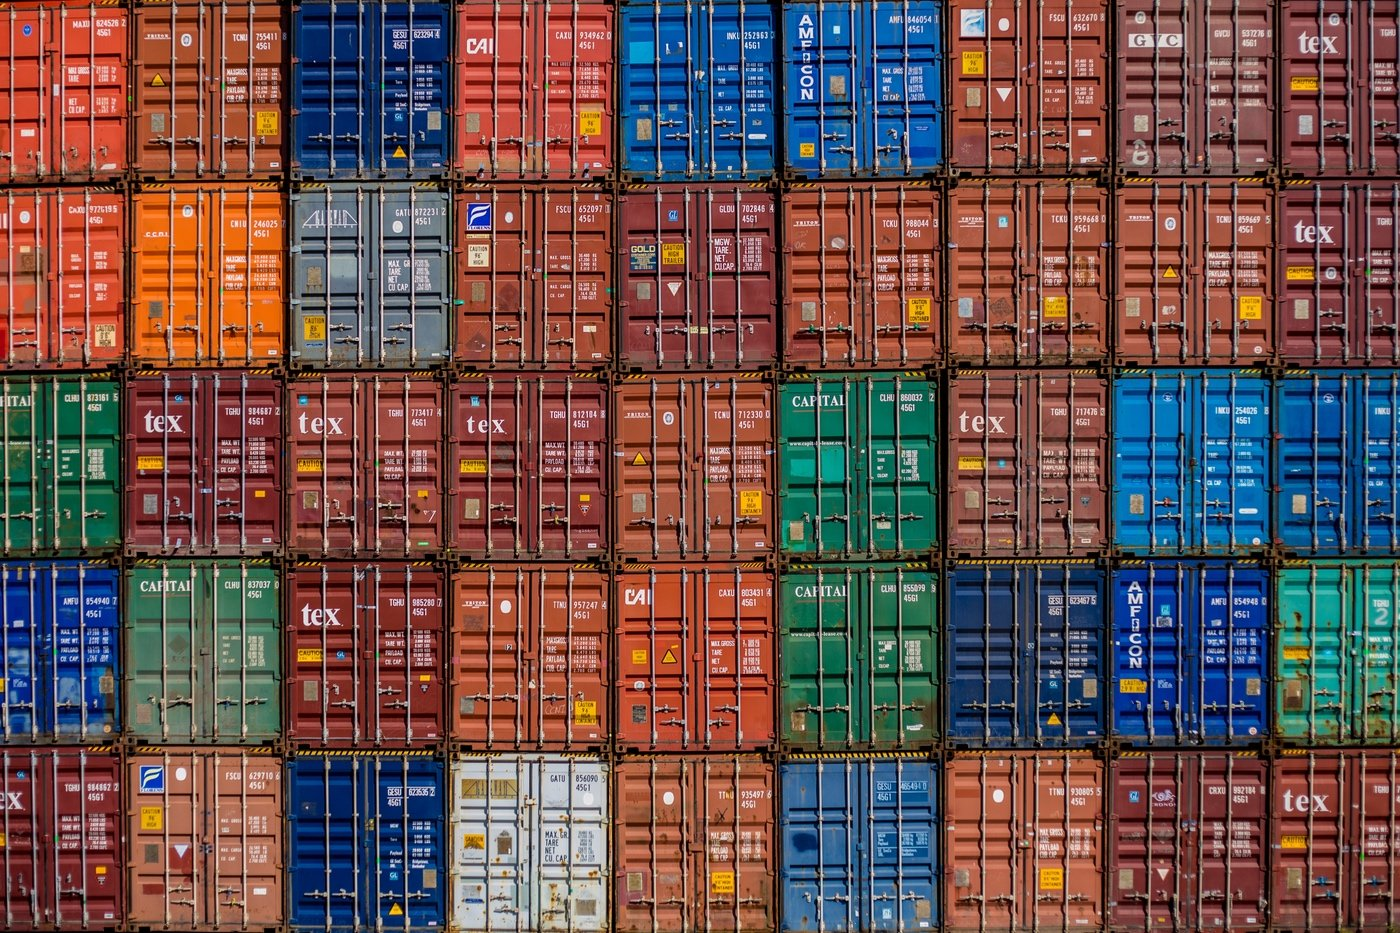 Shipping container stack